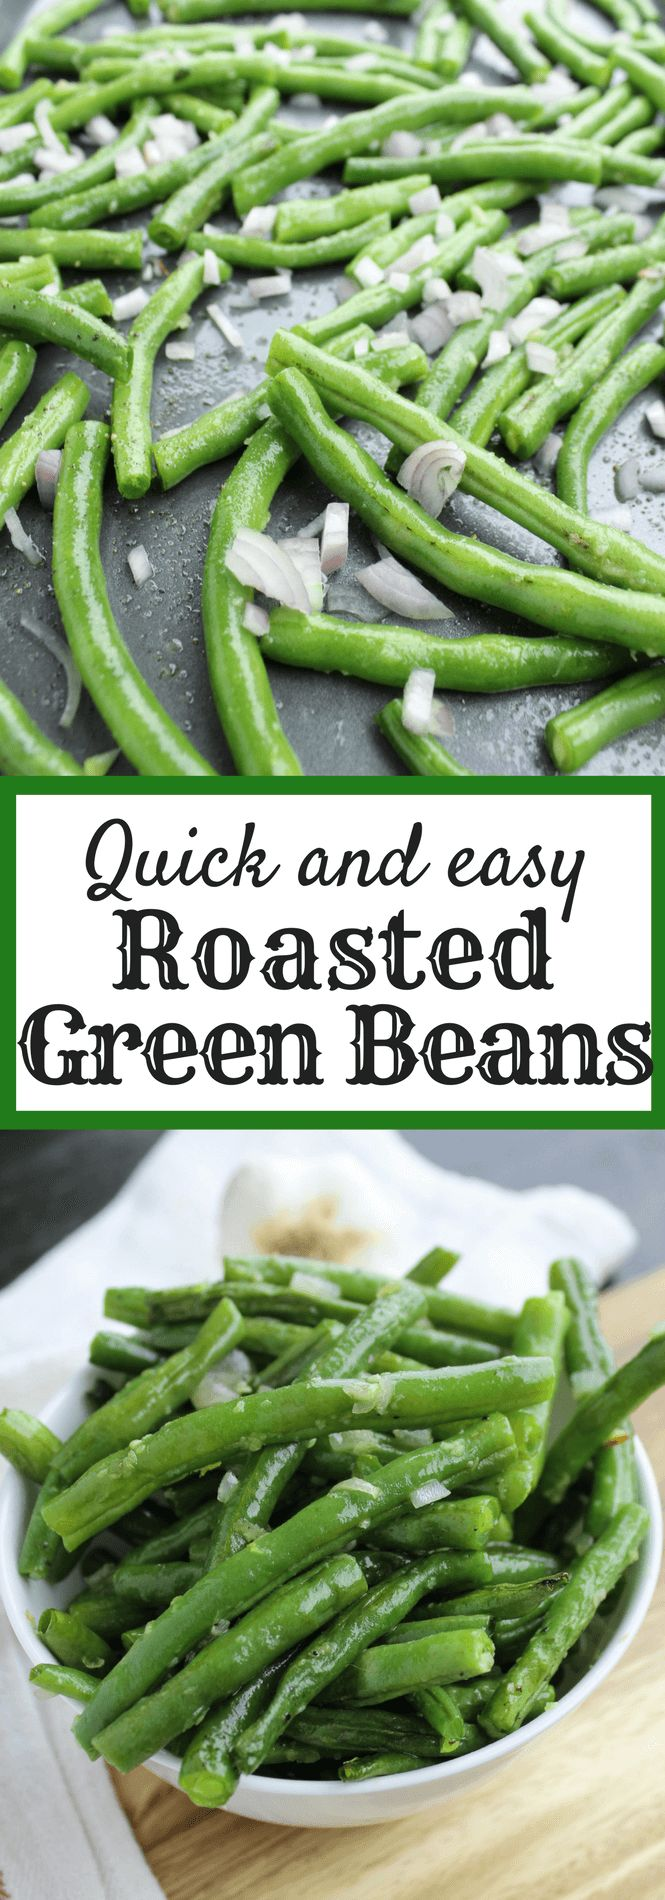 quick and easy roasted green beans #sidedish